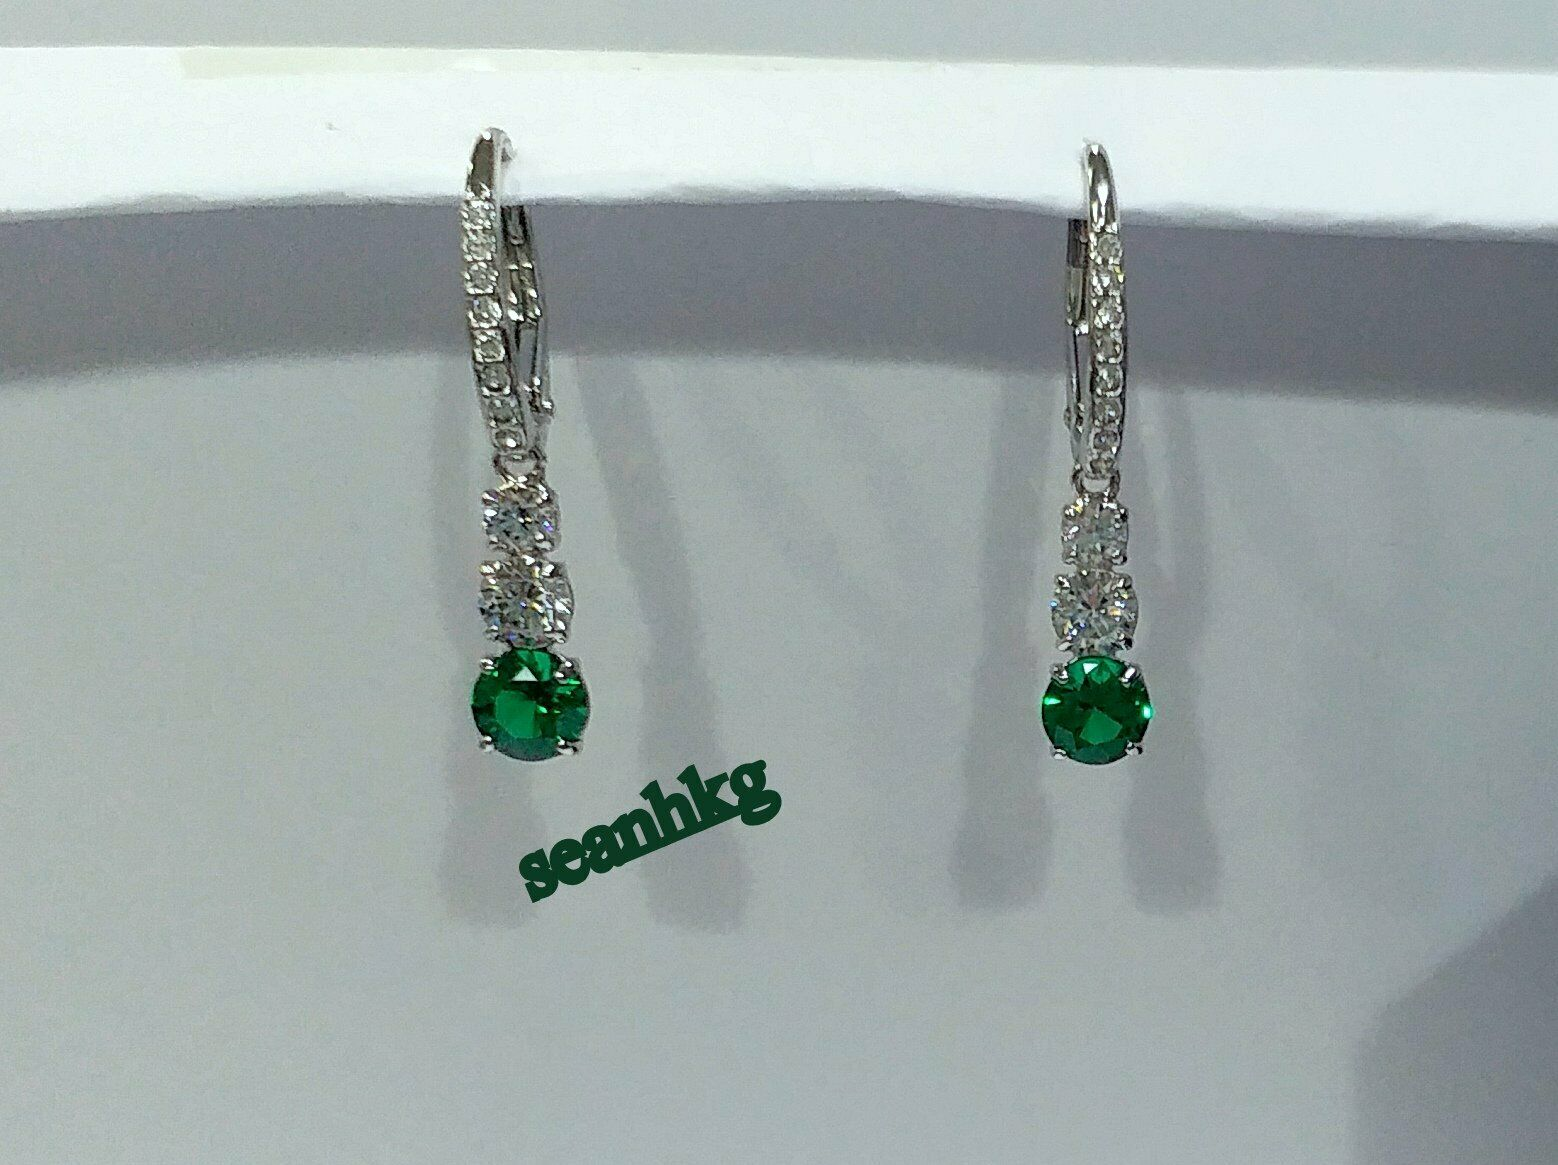 Attract Trilogy Pierced Earrings Green White Swarovski Crystal Authentic 5414682